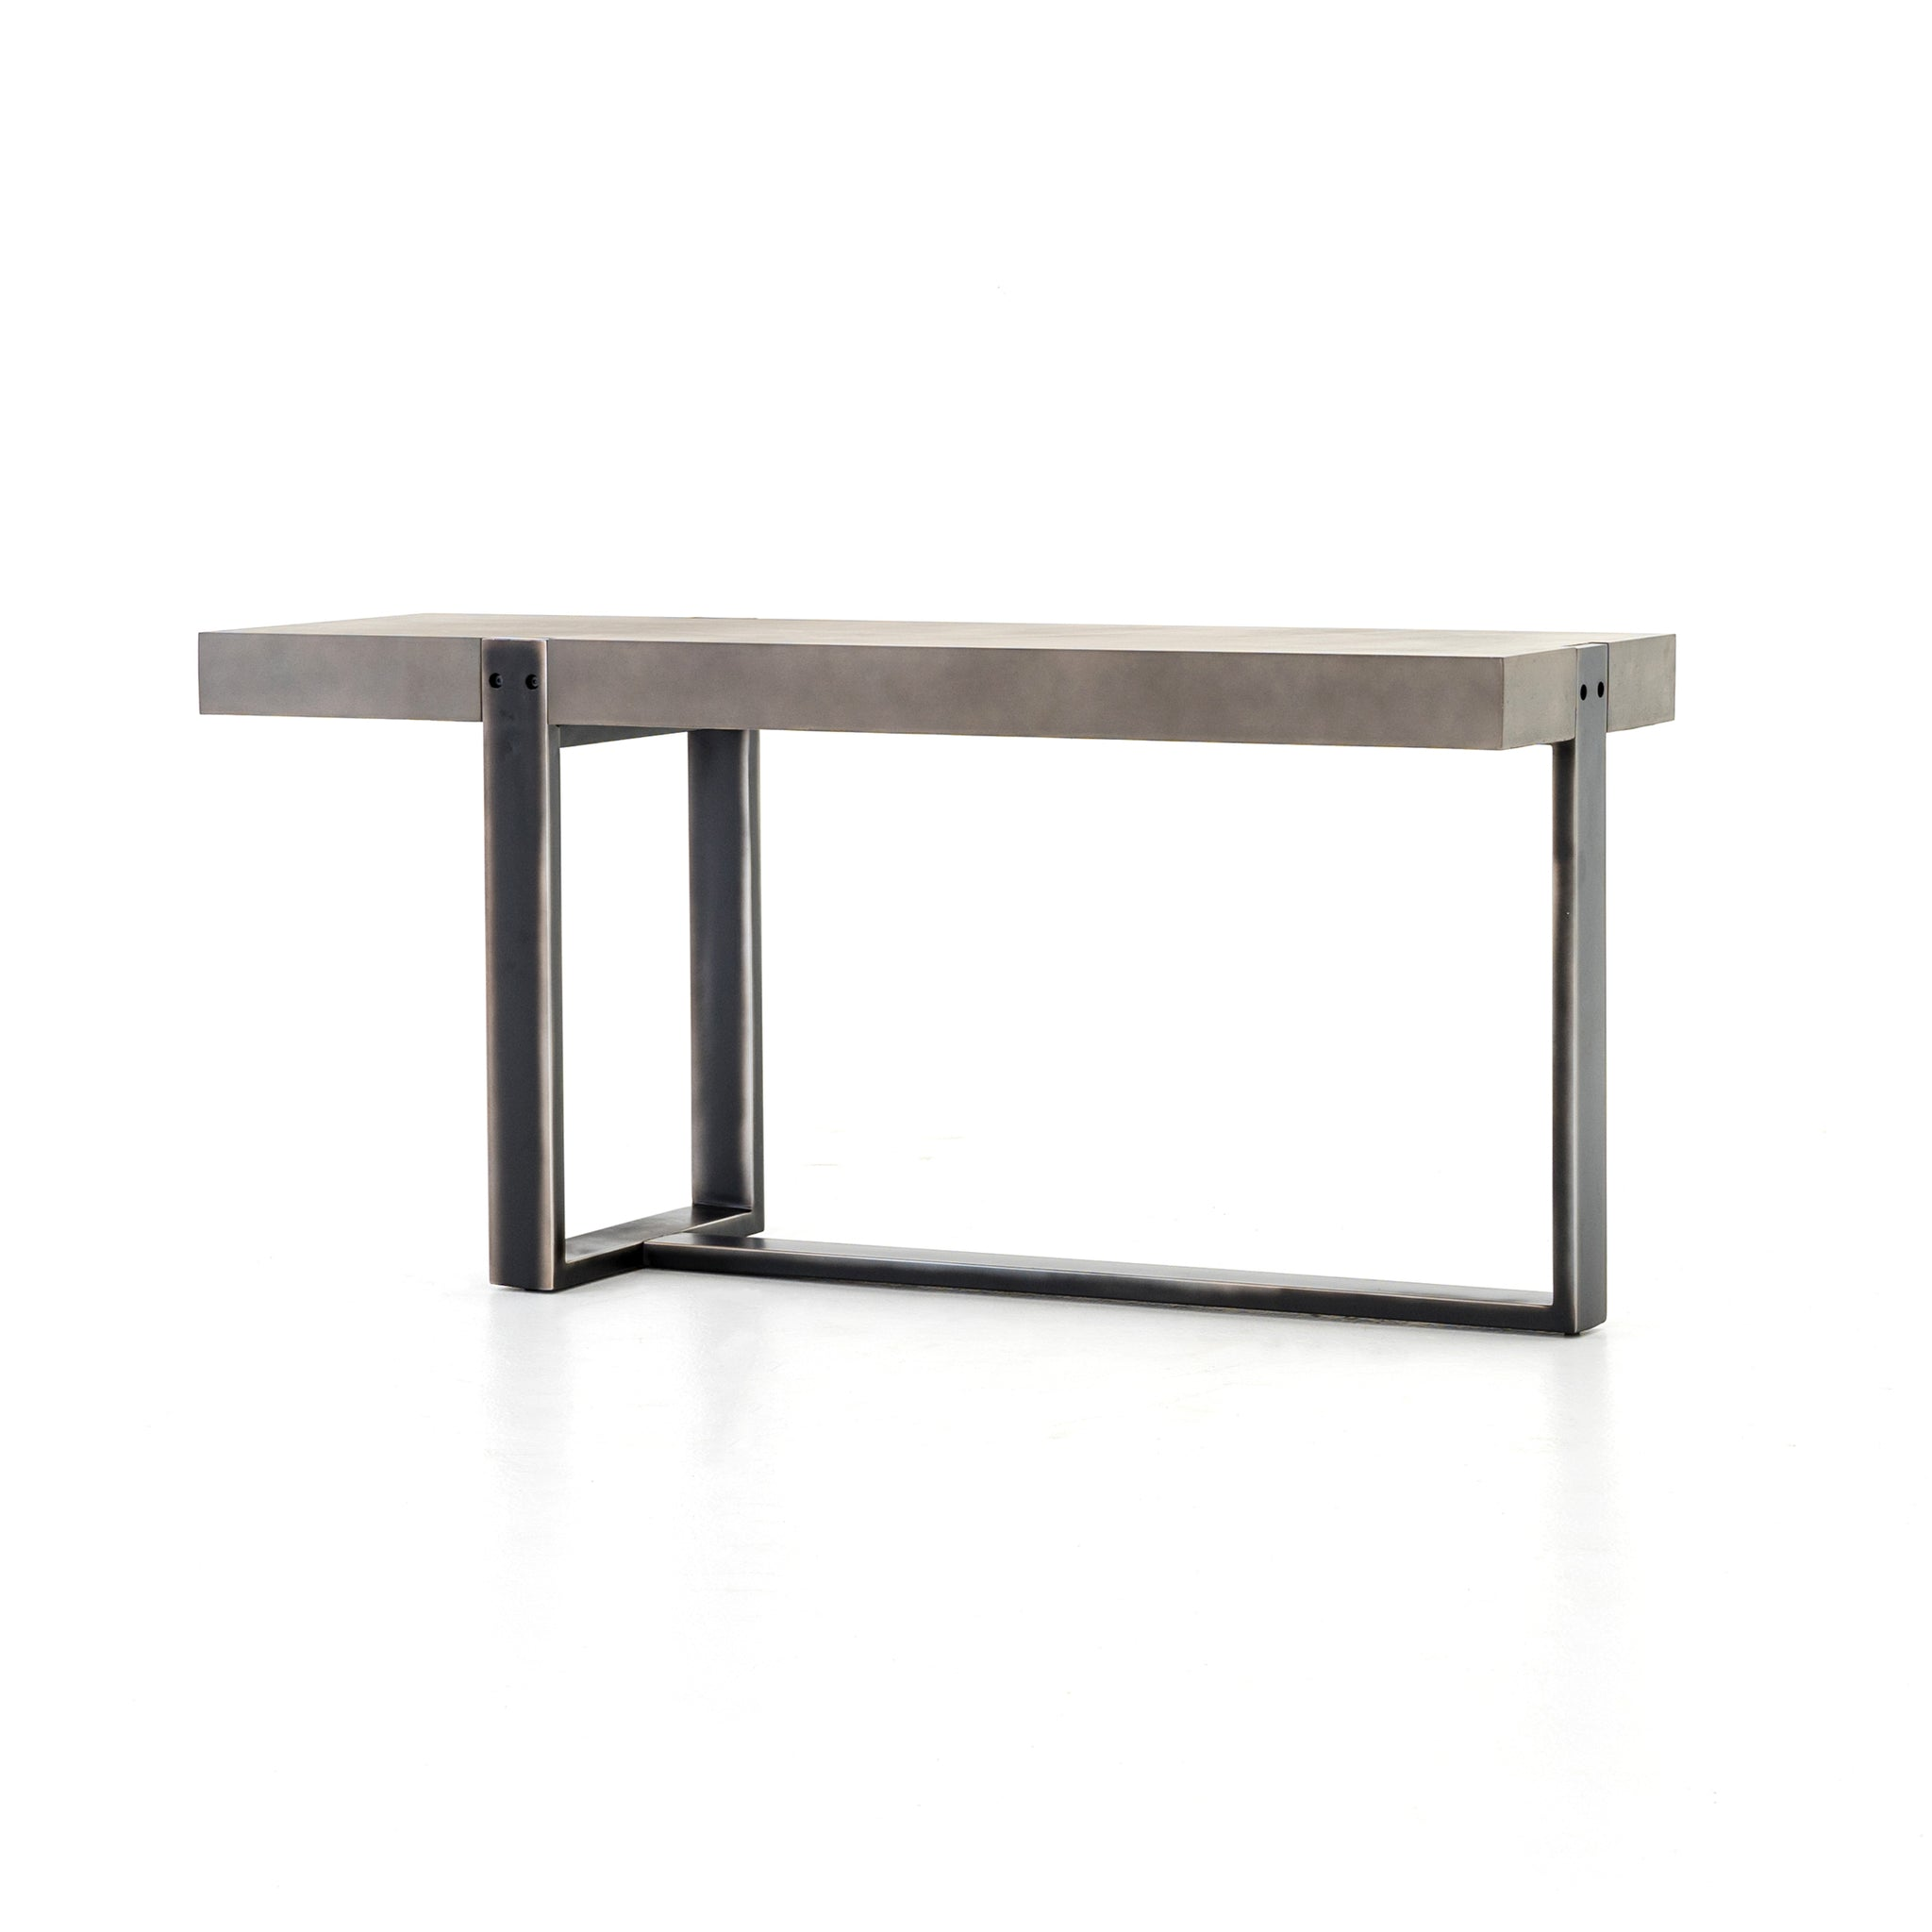 Concrete Top Iron Base Console Table - Furniture on Main